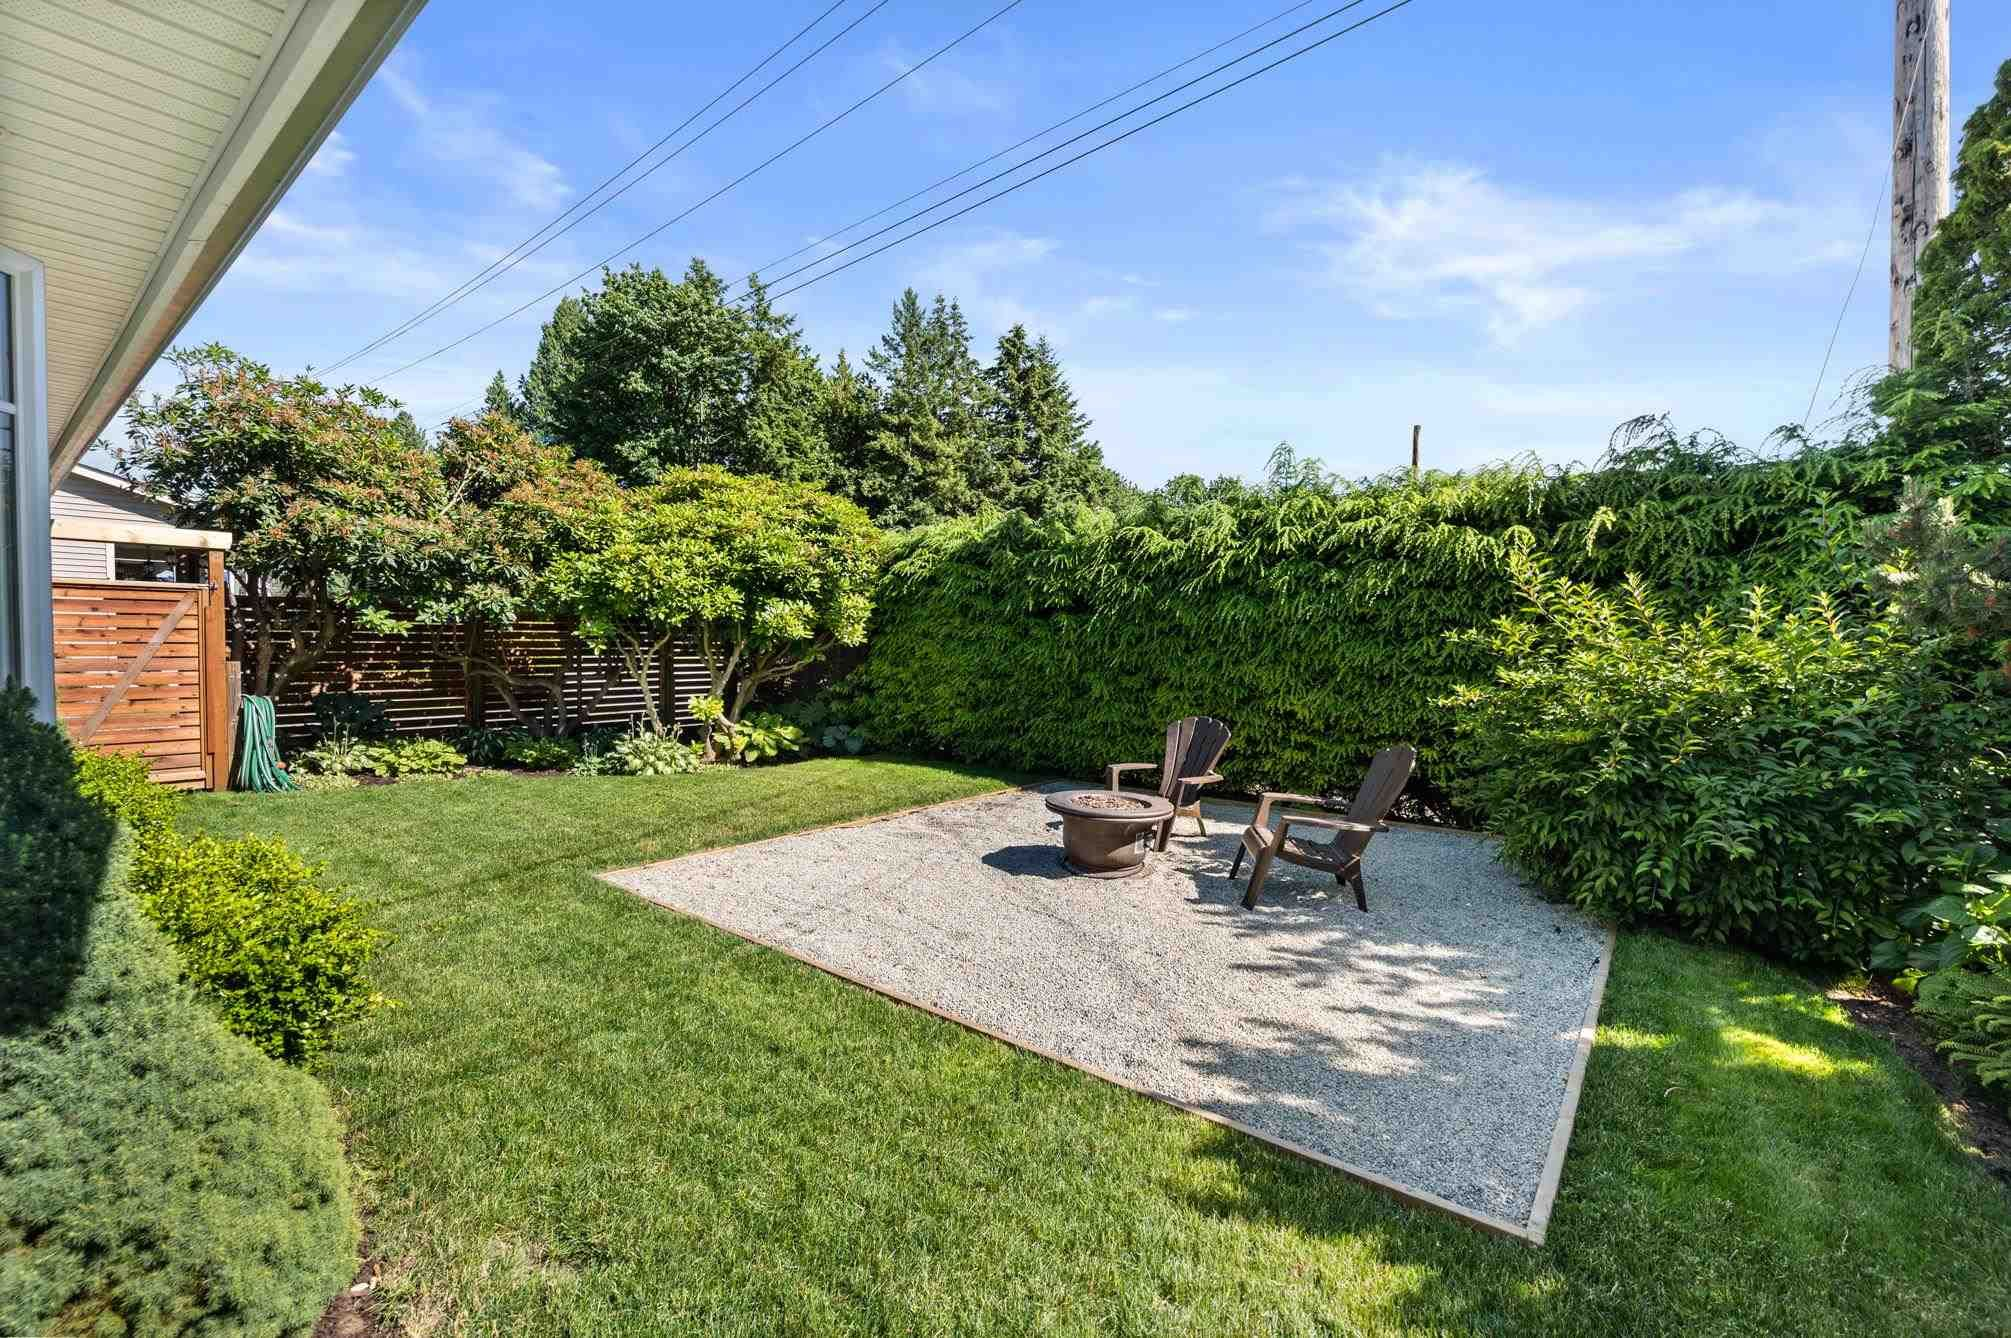 Photo 7: Photos: 32459 7TH Avenue in Mission: Mission BC House for sale : MLS®# R2595099